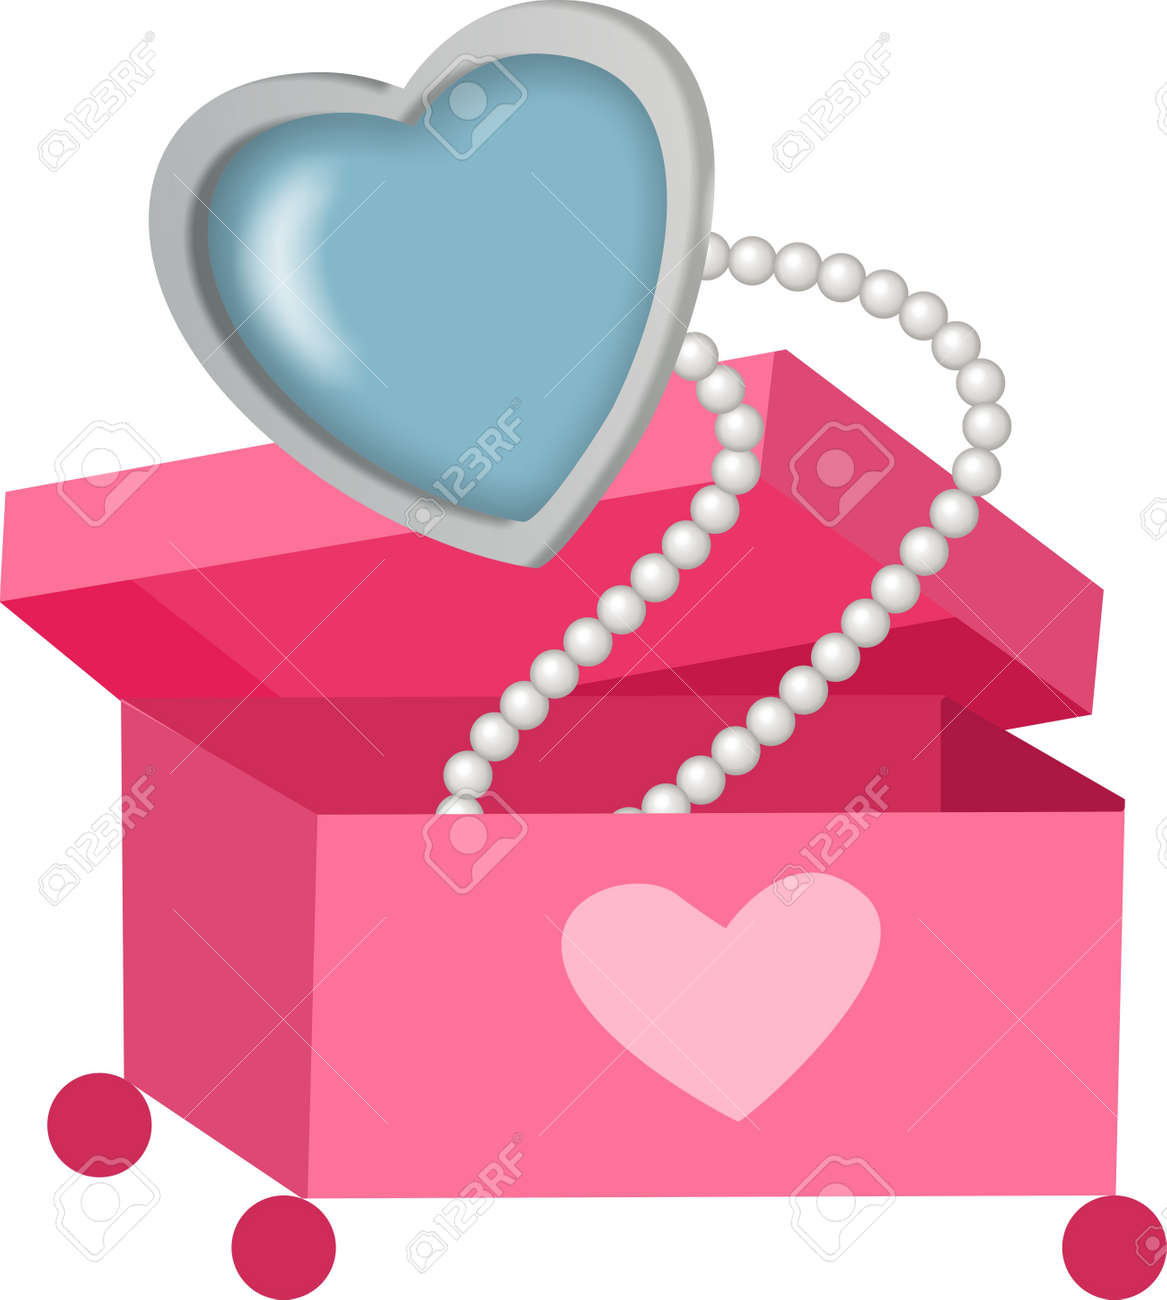 Pearl Necklace Stock Vector - 12024256